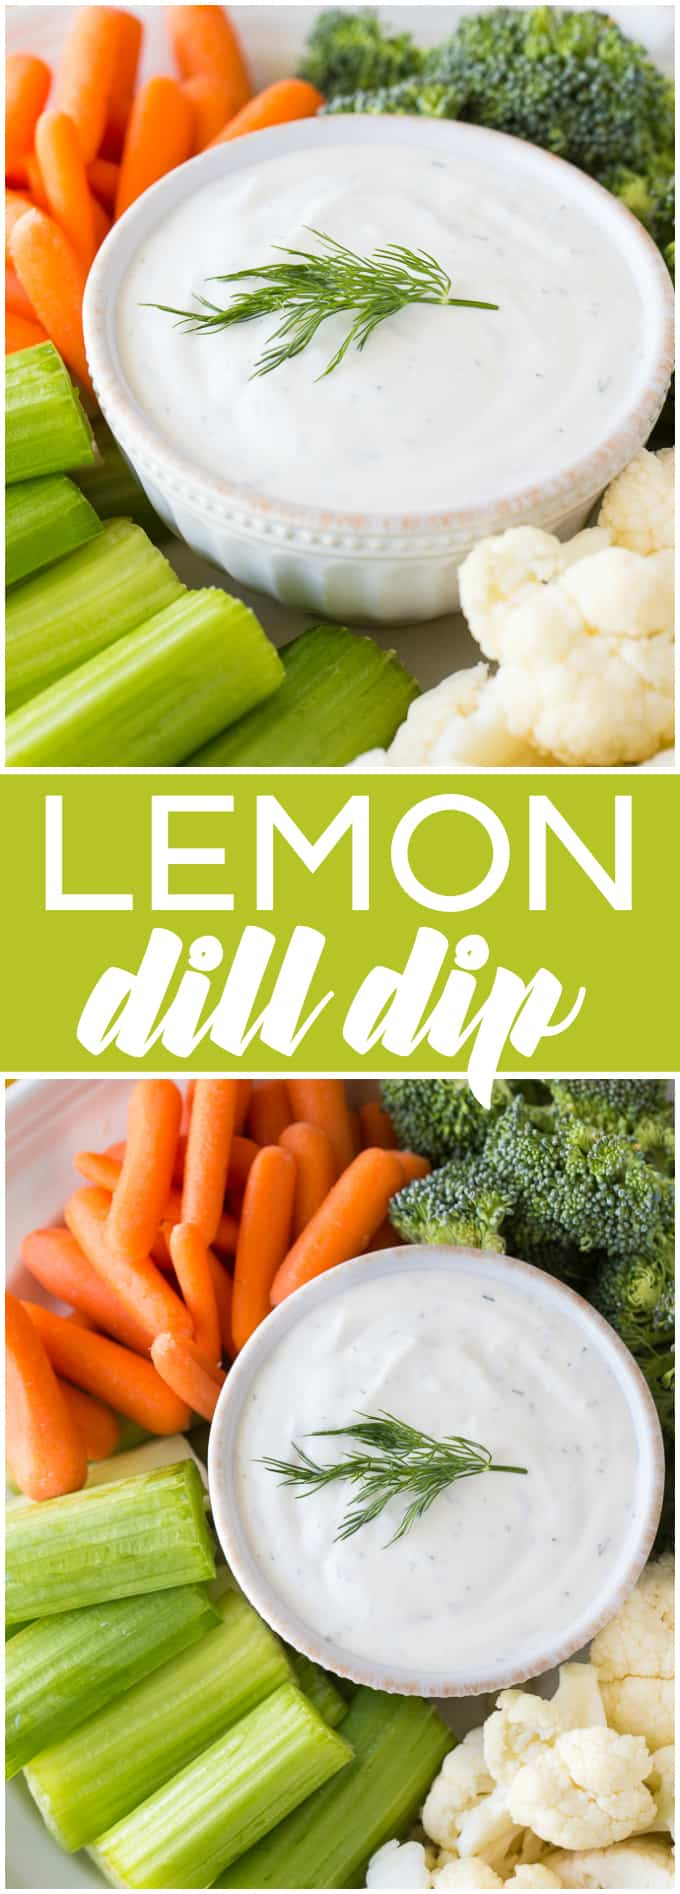 Lemon Dill Dip - Creamy with a hint of tang and fresh dill flavour. You are going to love eating this one with some fresh veggies!